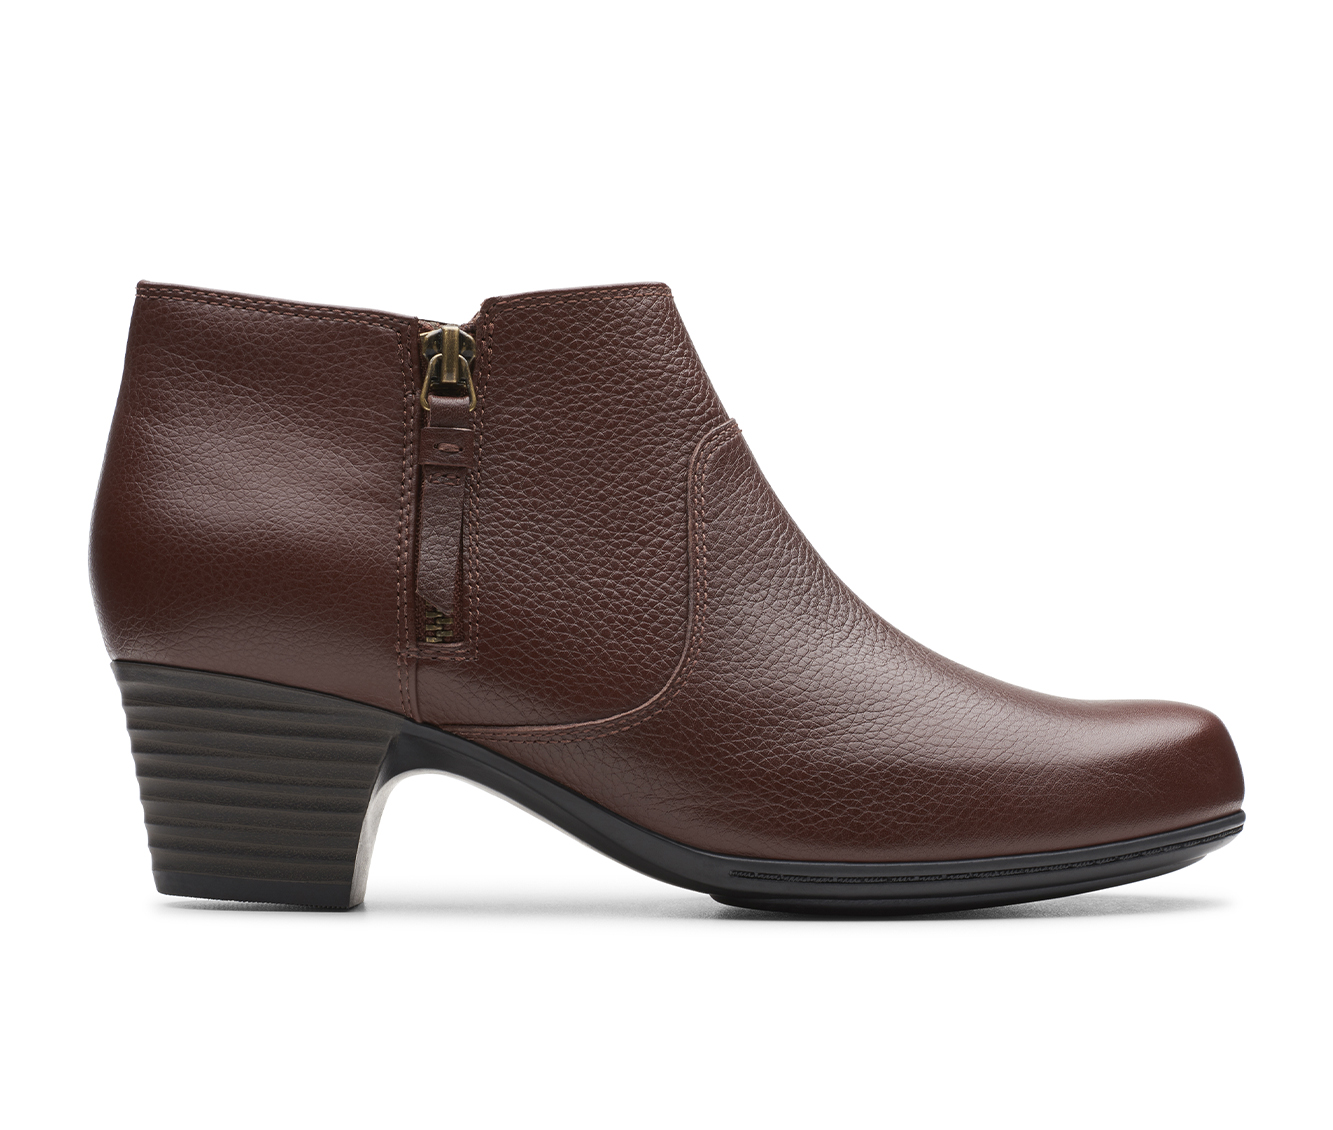 Clarks Valarie 2 Sofia Women's Boots (Brown - Leather)